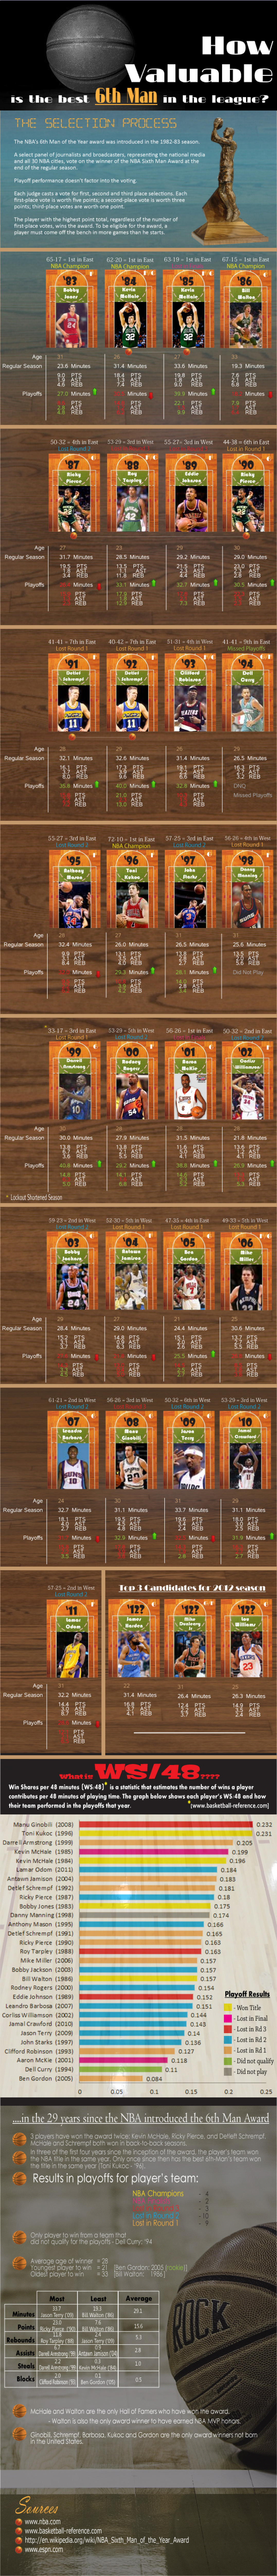 How Valuable is the Best 6th Man in the League? Infographic